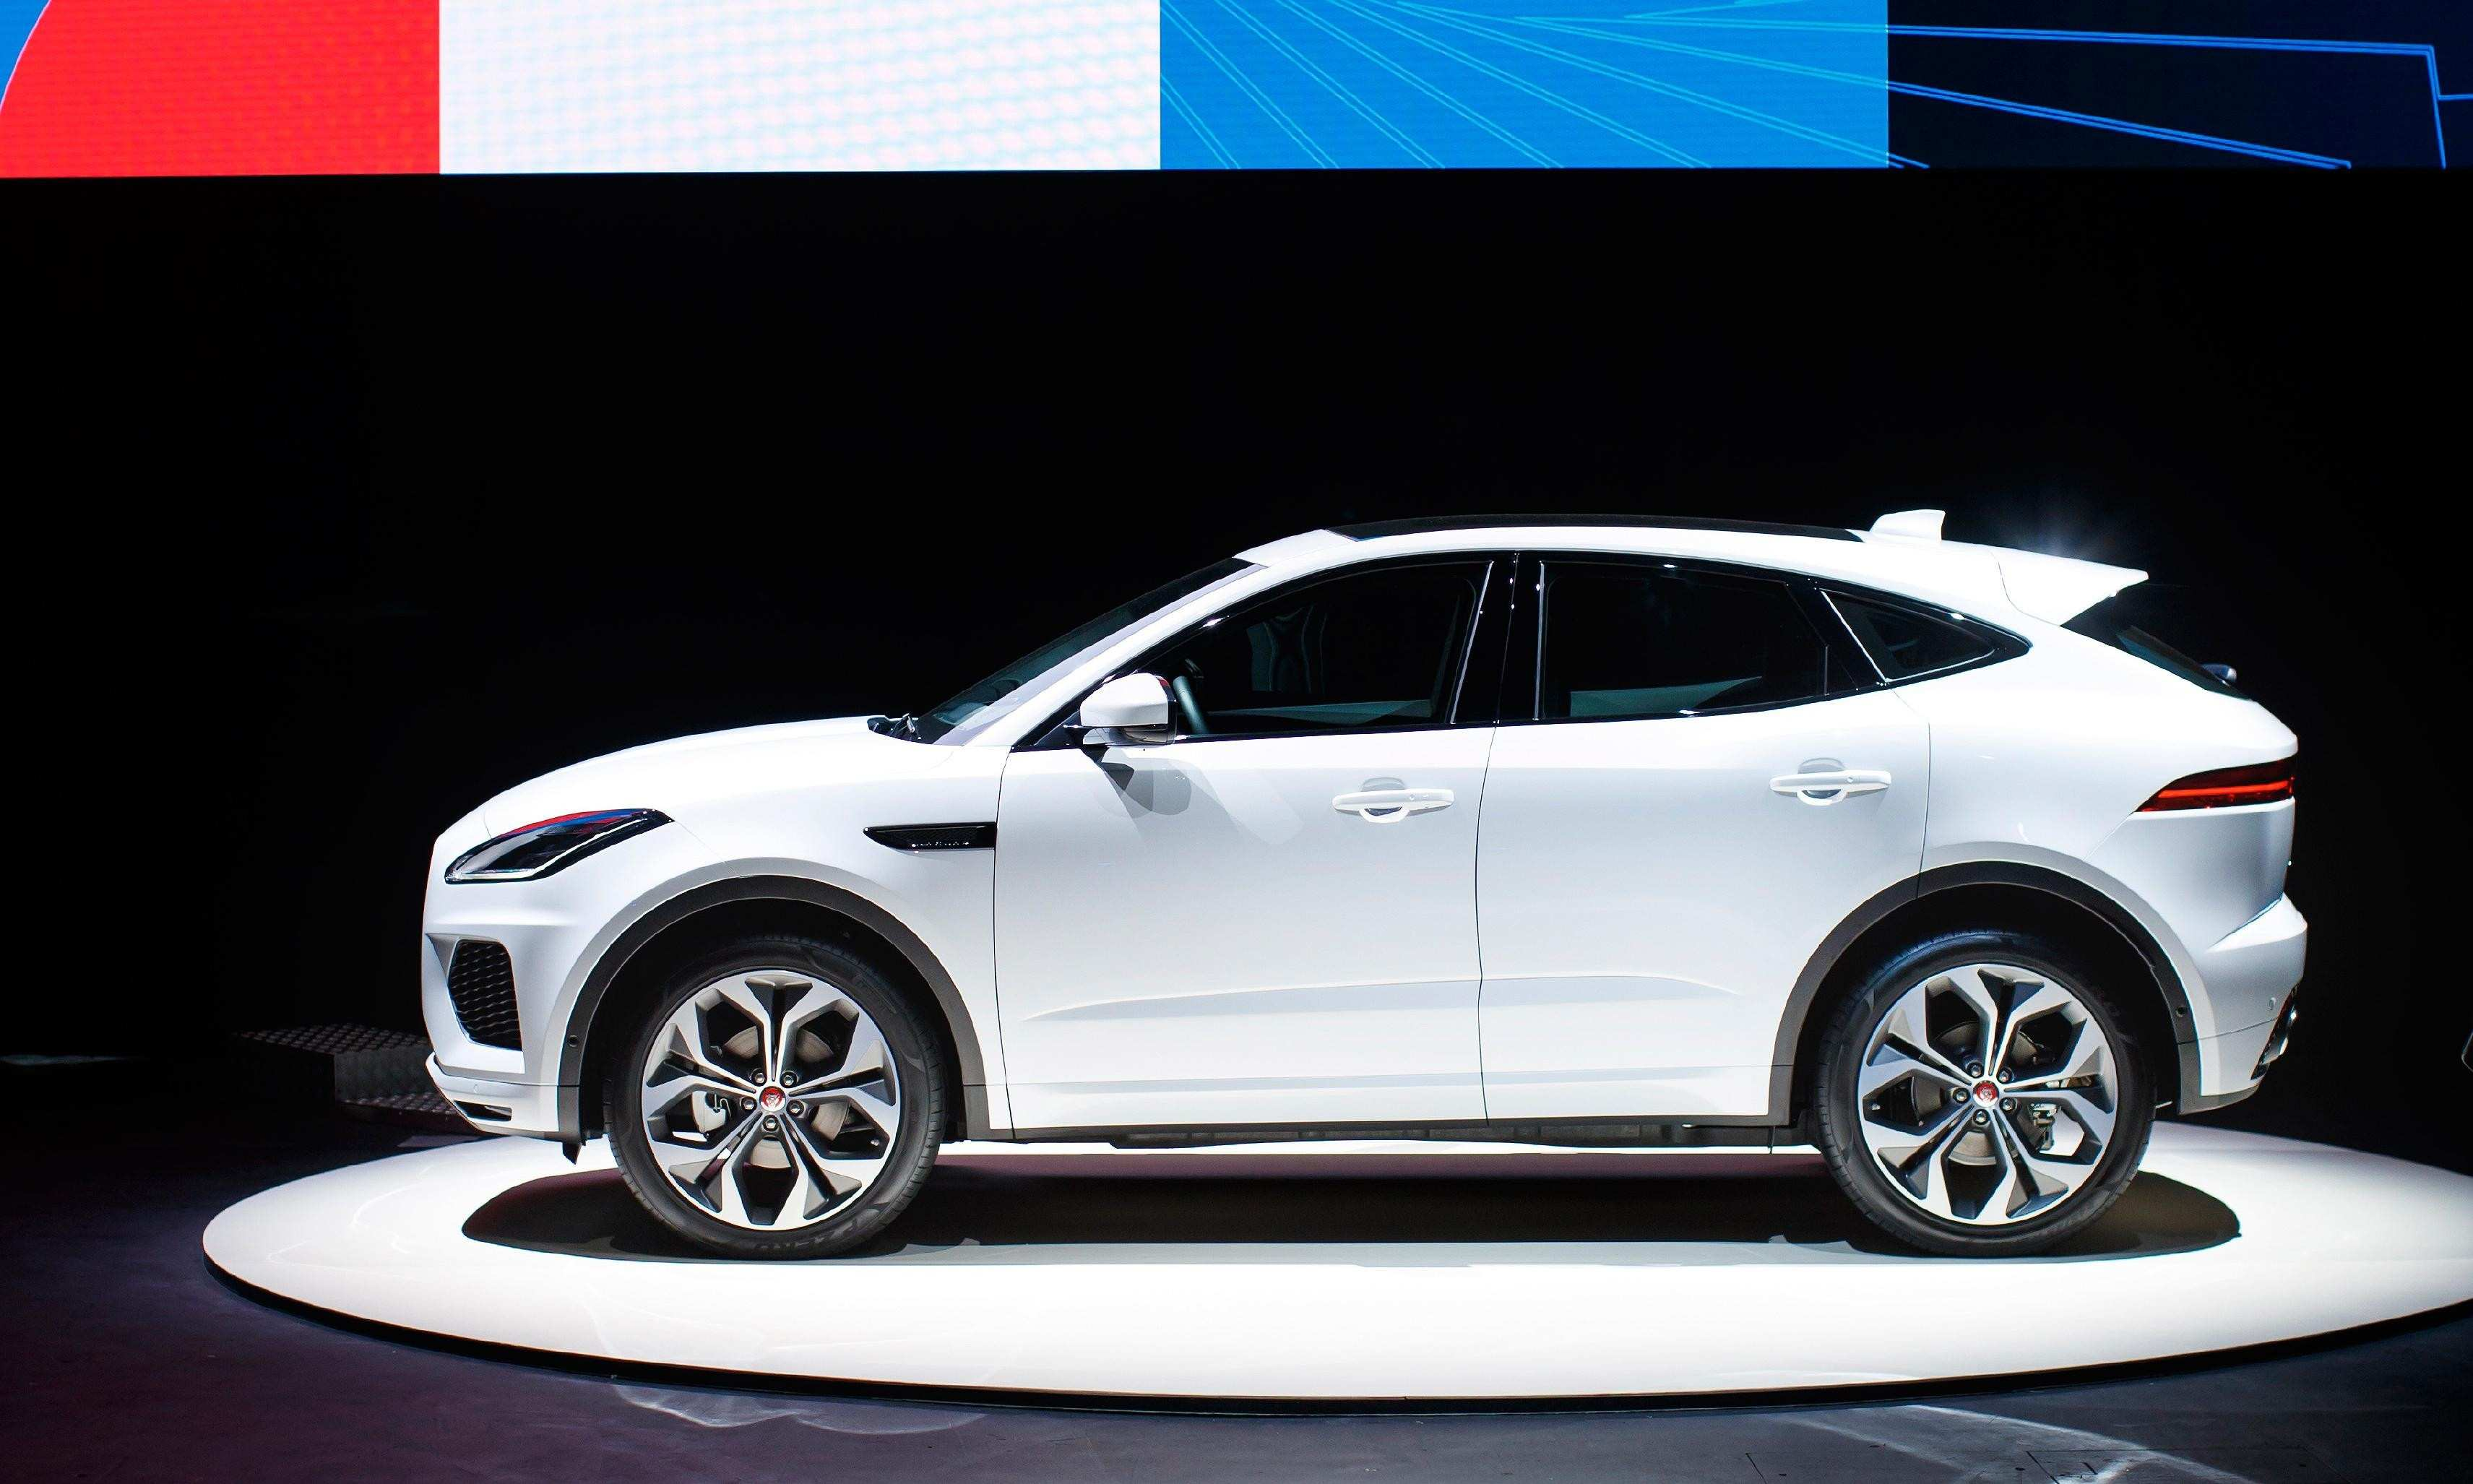 89 All New 2019 Jaguar E Pace Price Release Date with 2019 Jaguar E Pace Price